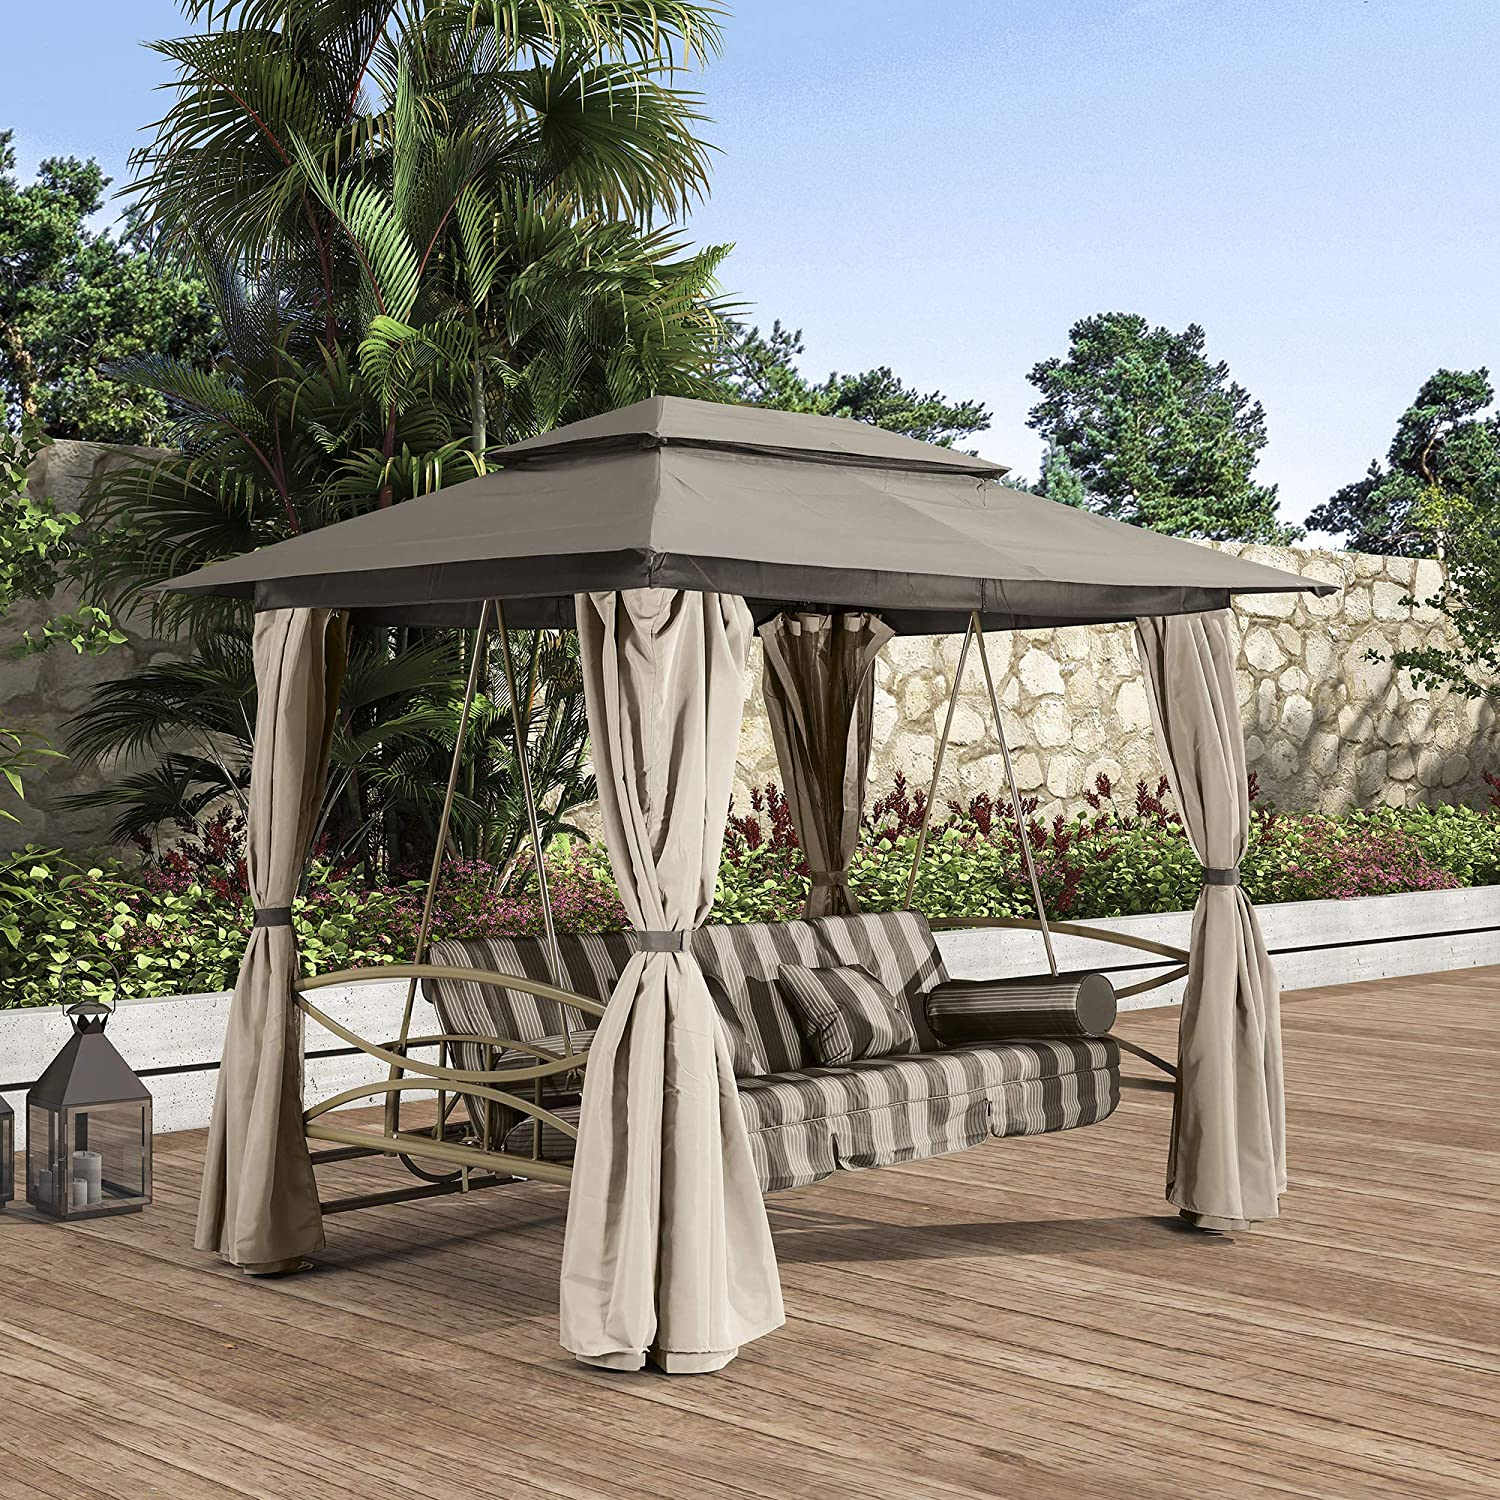 PURPLE LEAF Very popular Ranking TOP18 3 Person Outdoor Patio Netti Gazebo Porch with Swing